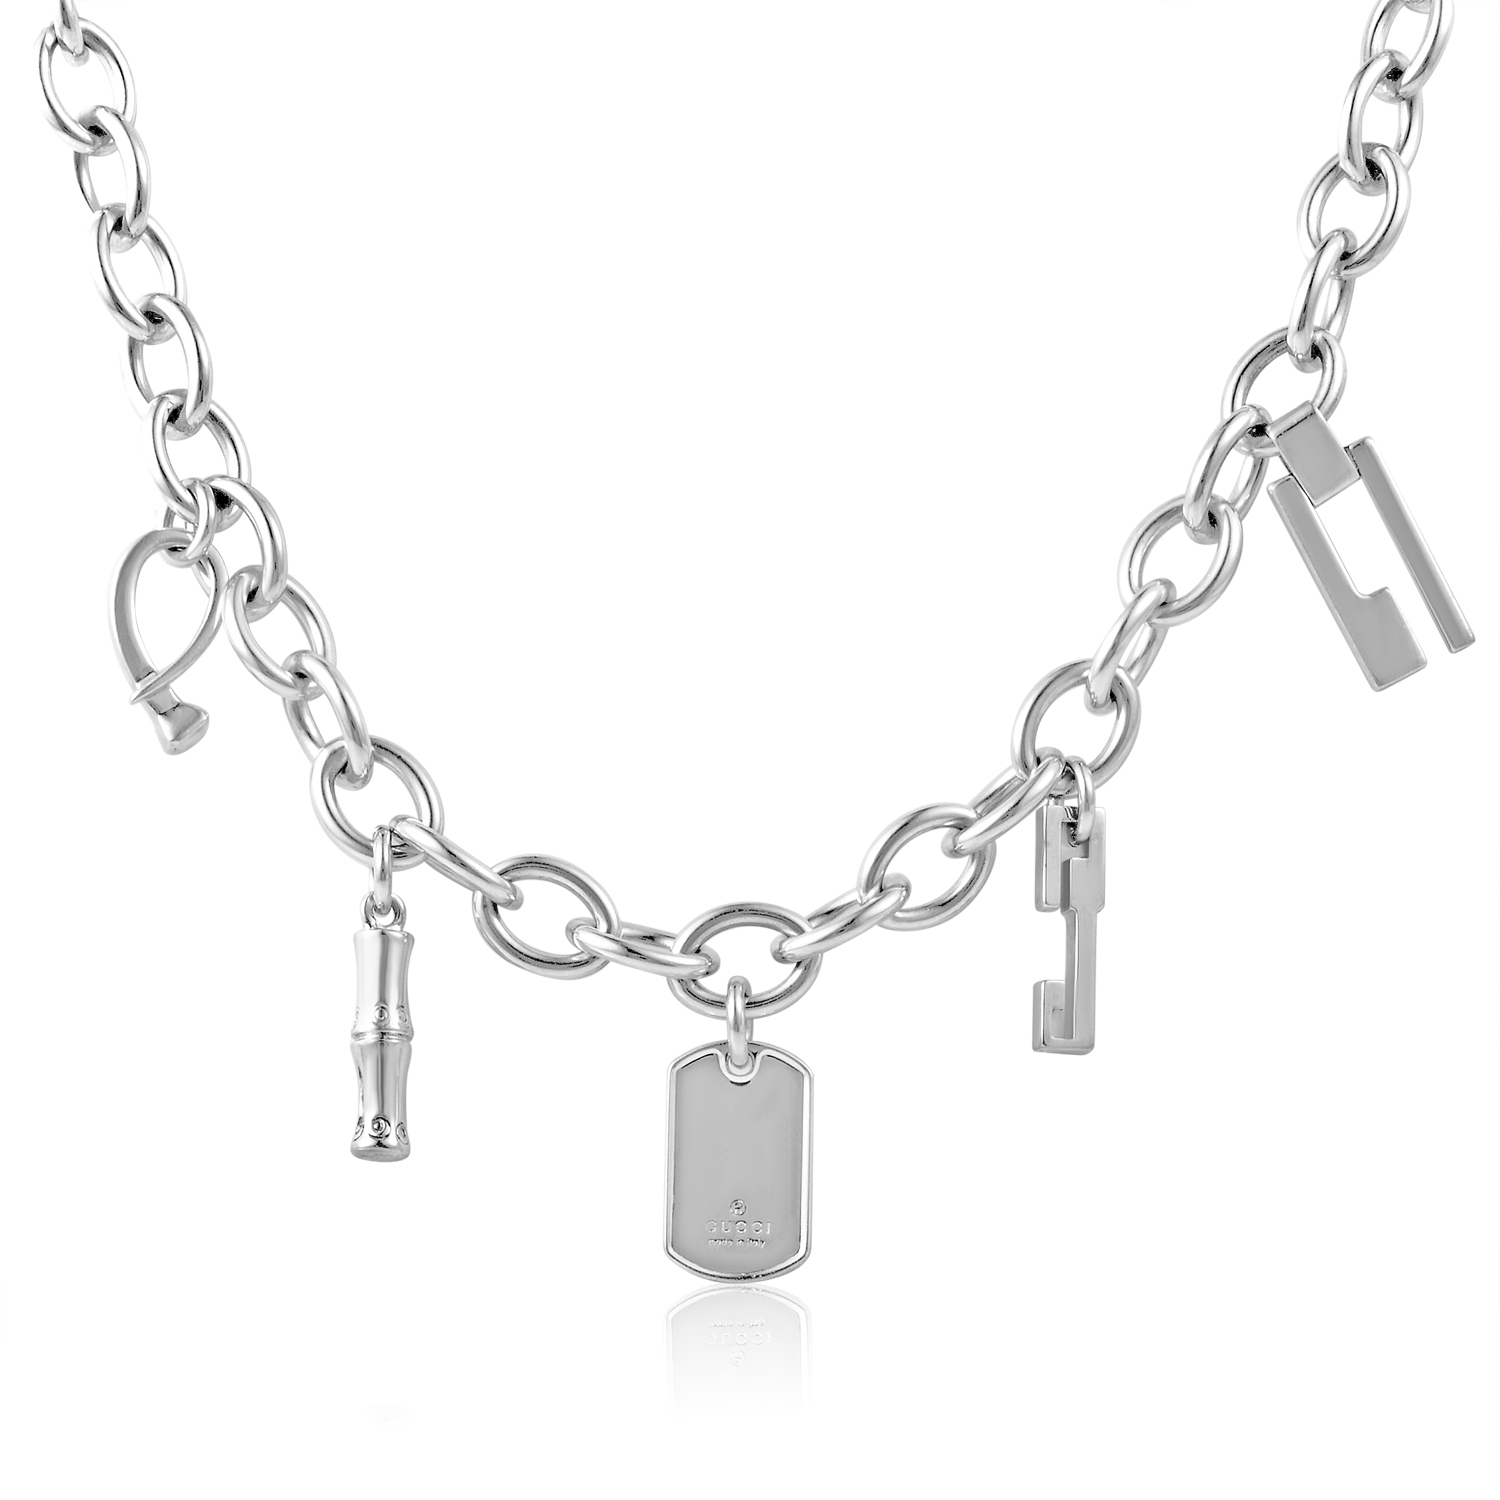 Women's Sterling Silver Mult-Charm Necklace 14125158400